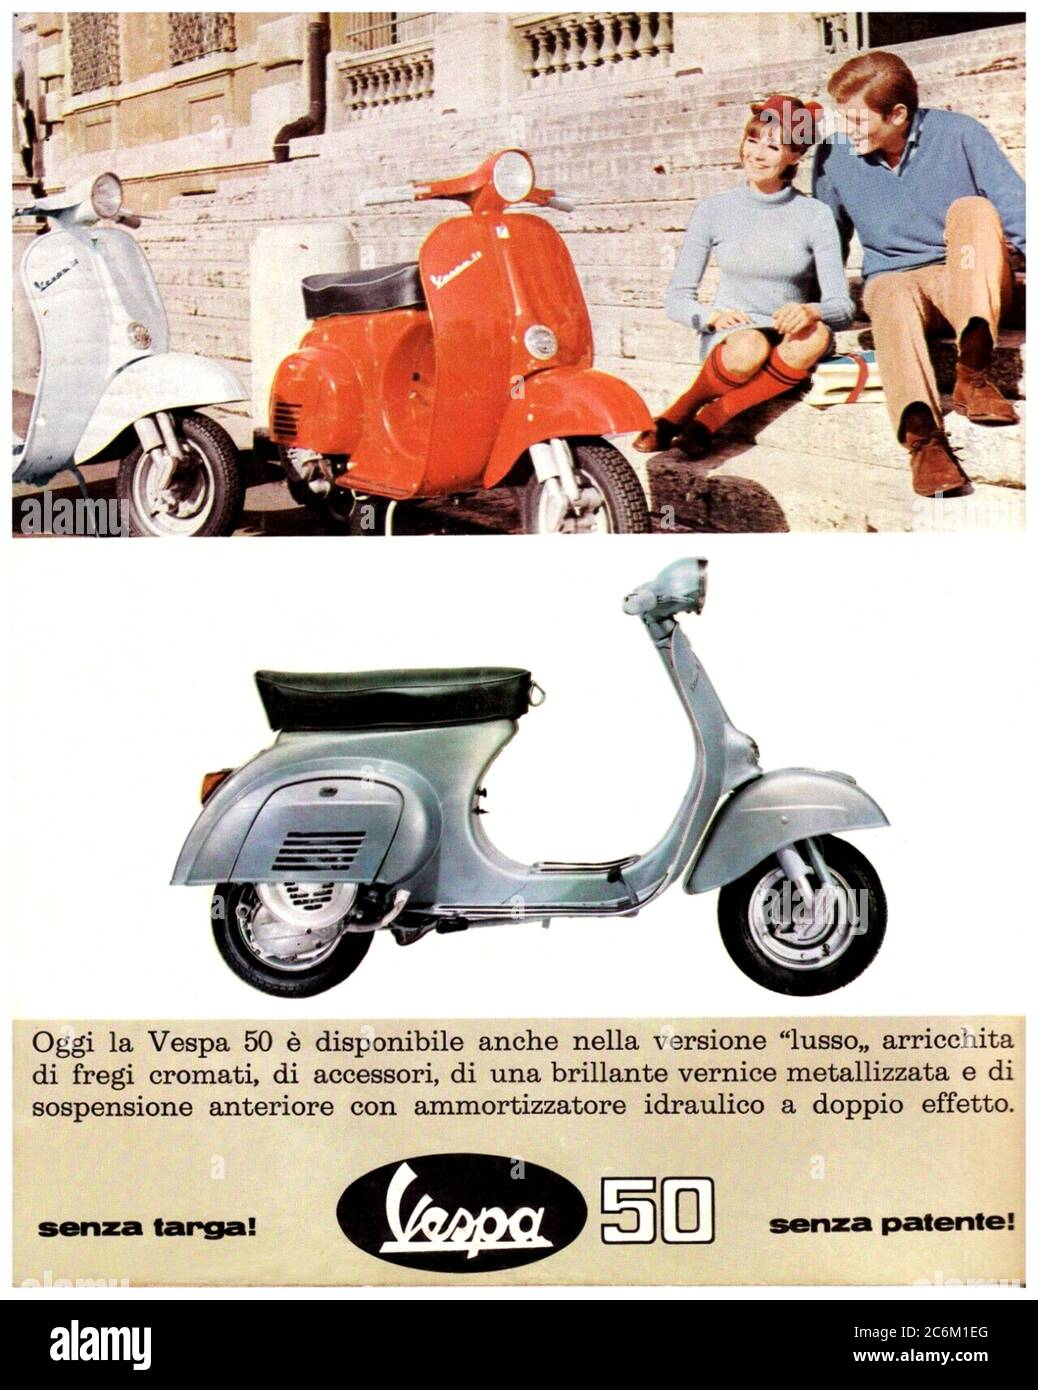 1967 , ITALY : The celebrated italian scooter VESPA 50 LUSSO  by PIAGGIO industry , advertising . - SCOOTERS - motorino - moto -  INDUSTRIA - INDUSTRIALE - HISTORY -  foto storica - INDUSTRIALE - INDUSTRY - INDUSTRIA - ADVERTISING - pubblicità - moto - motociclismo - motorcycle - motoscooter - ANNI SESSANTA - '60 - 60's --- Archivio GBB Stock Photo